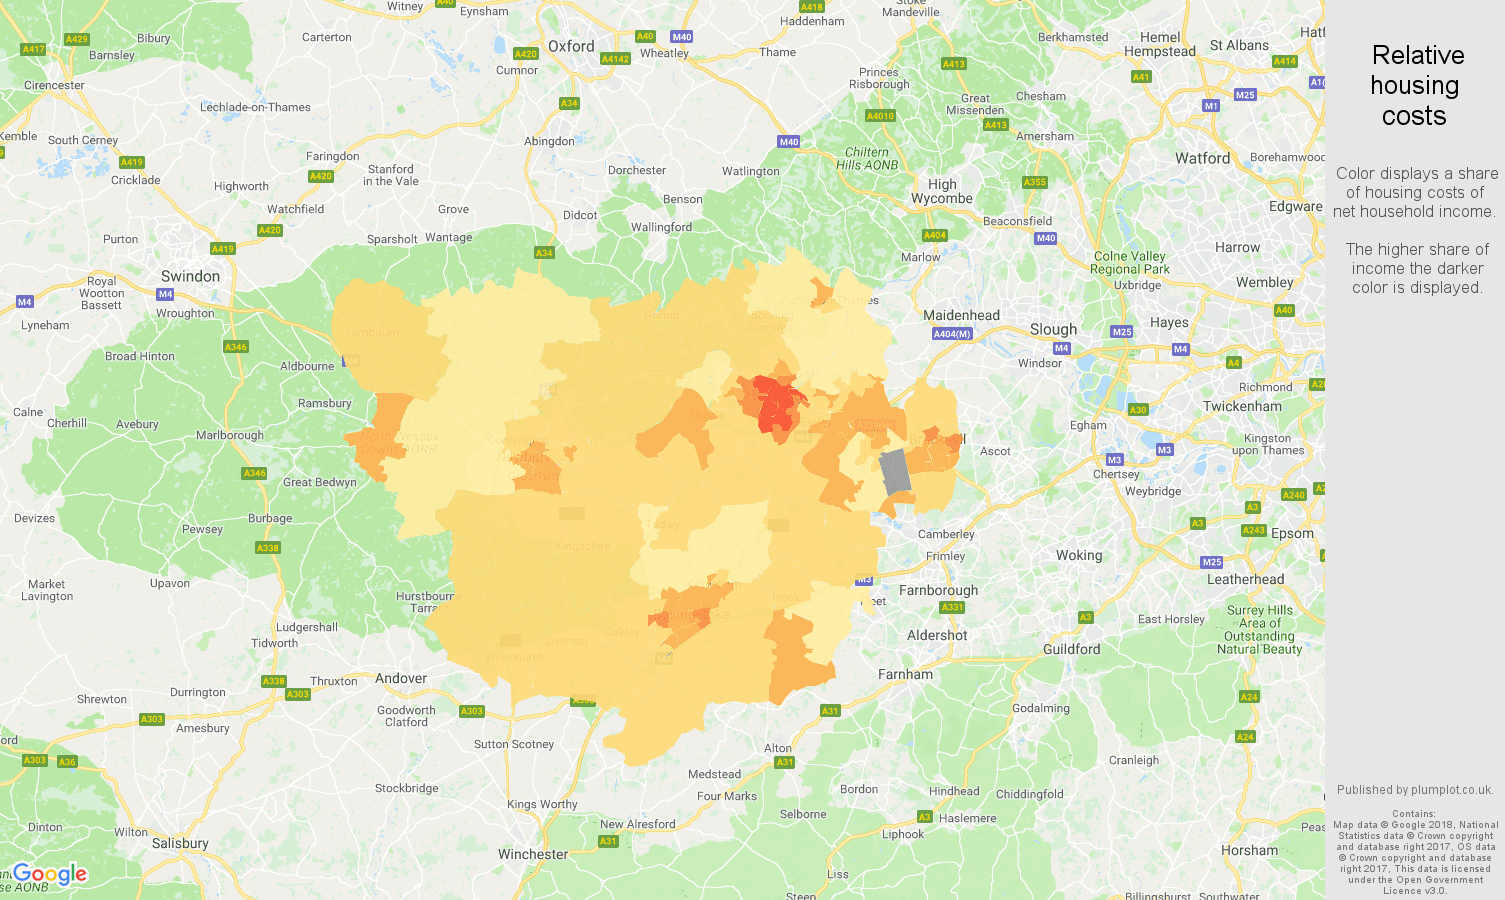 Reading relative housing costs map